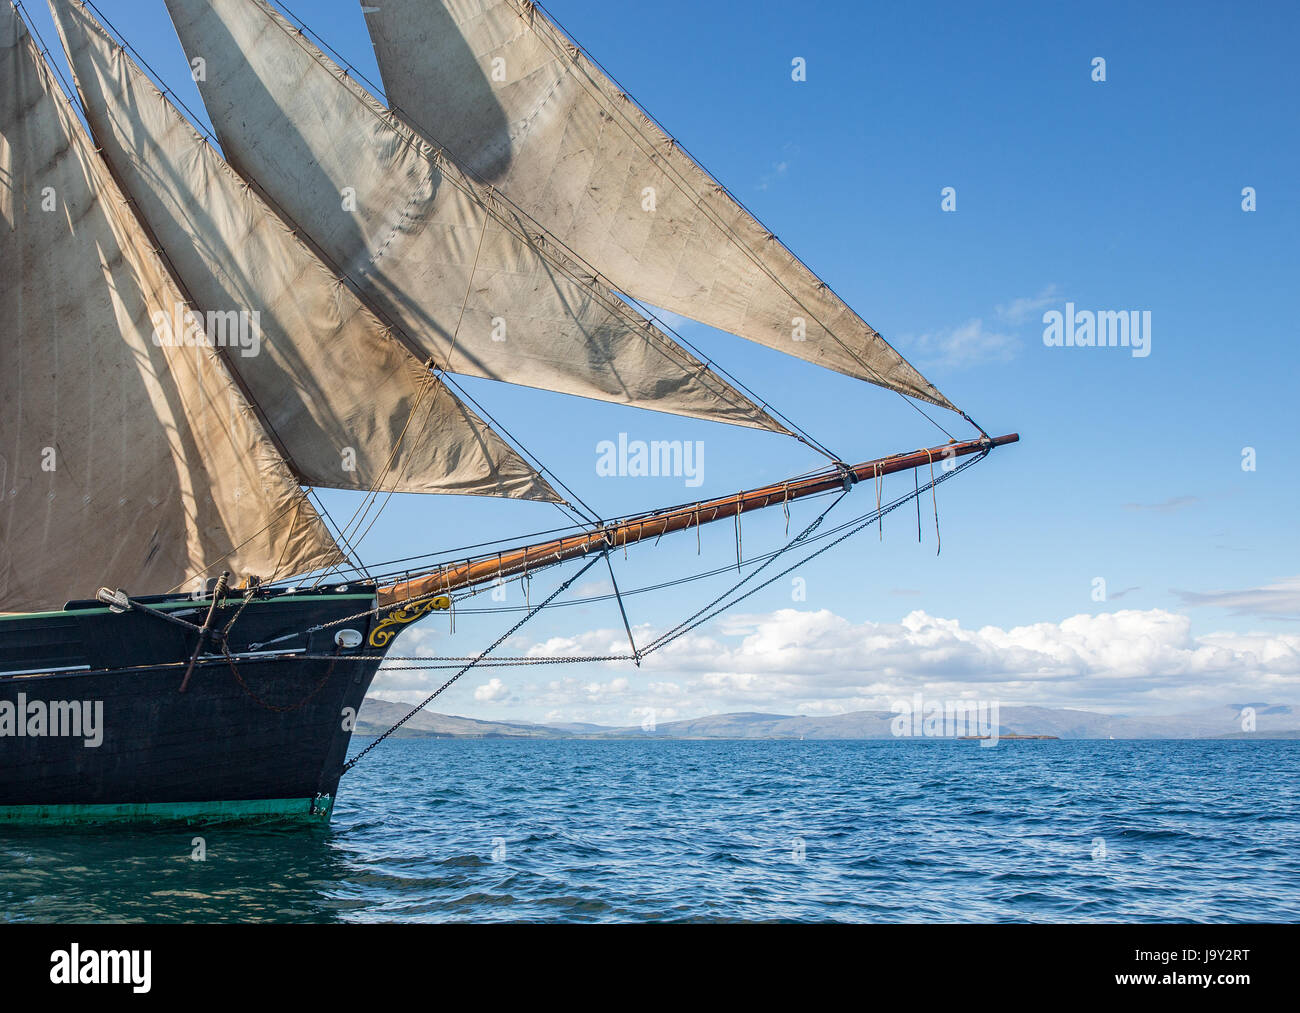 Twin masted sailing ship off the island of Kerrera, Oban, Scotland taken offshore from Gylan Castle Stock Photo